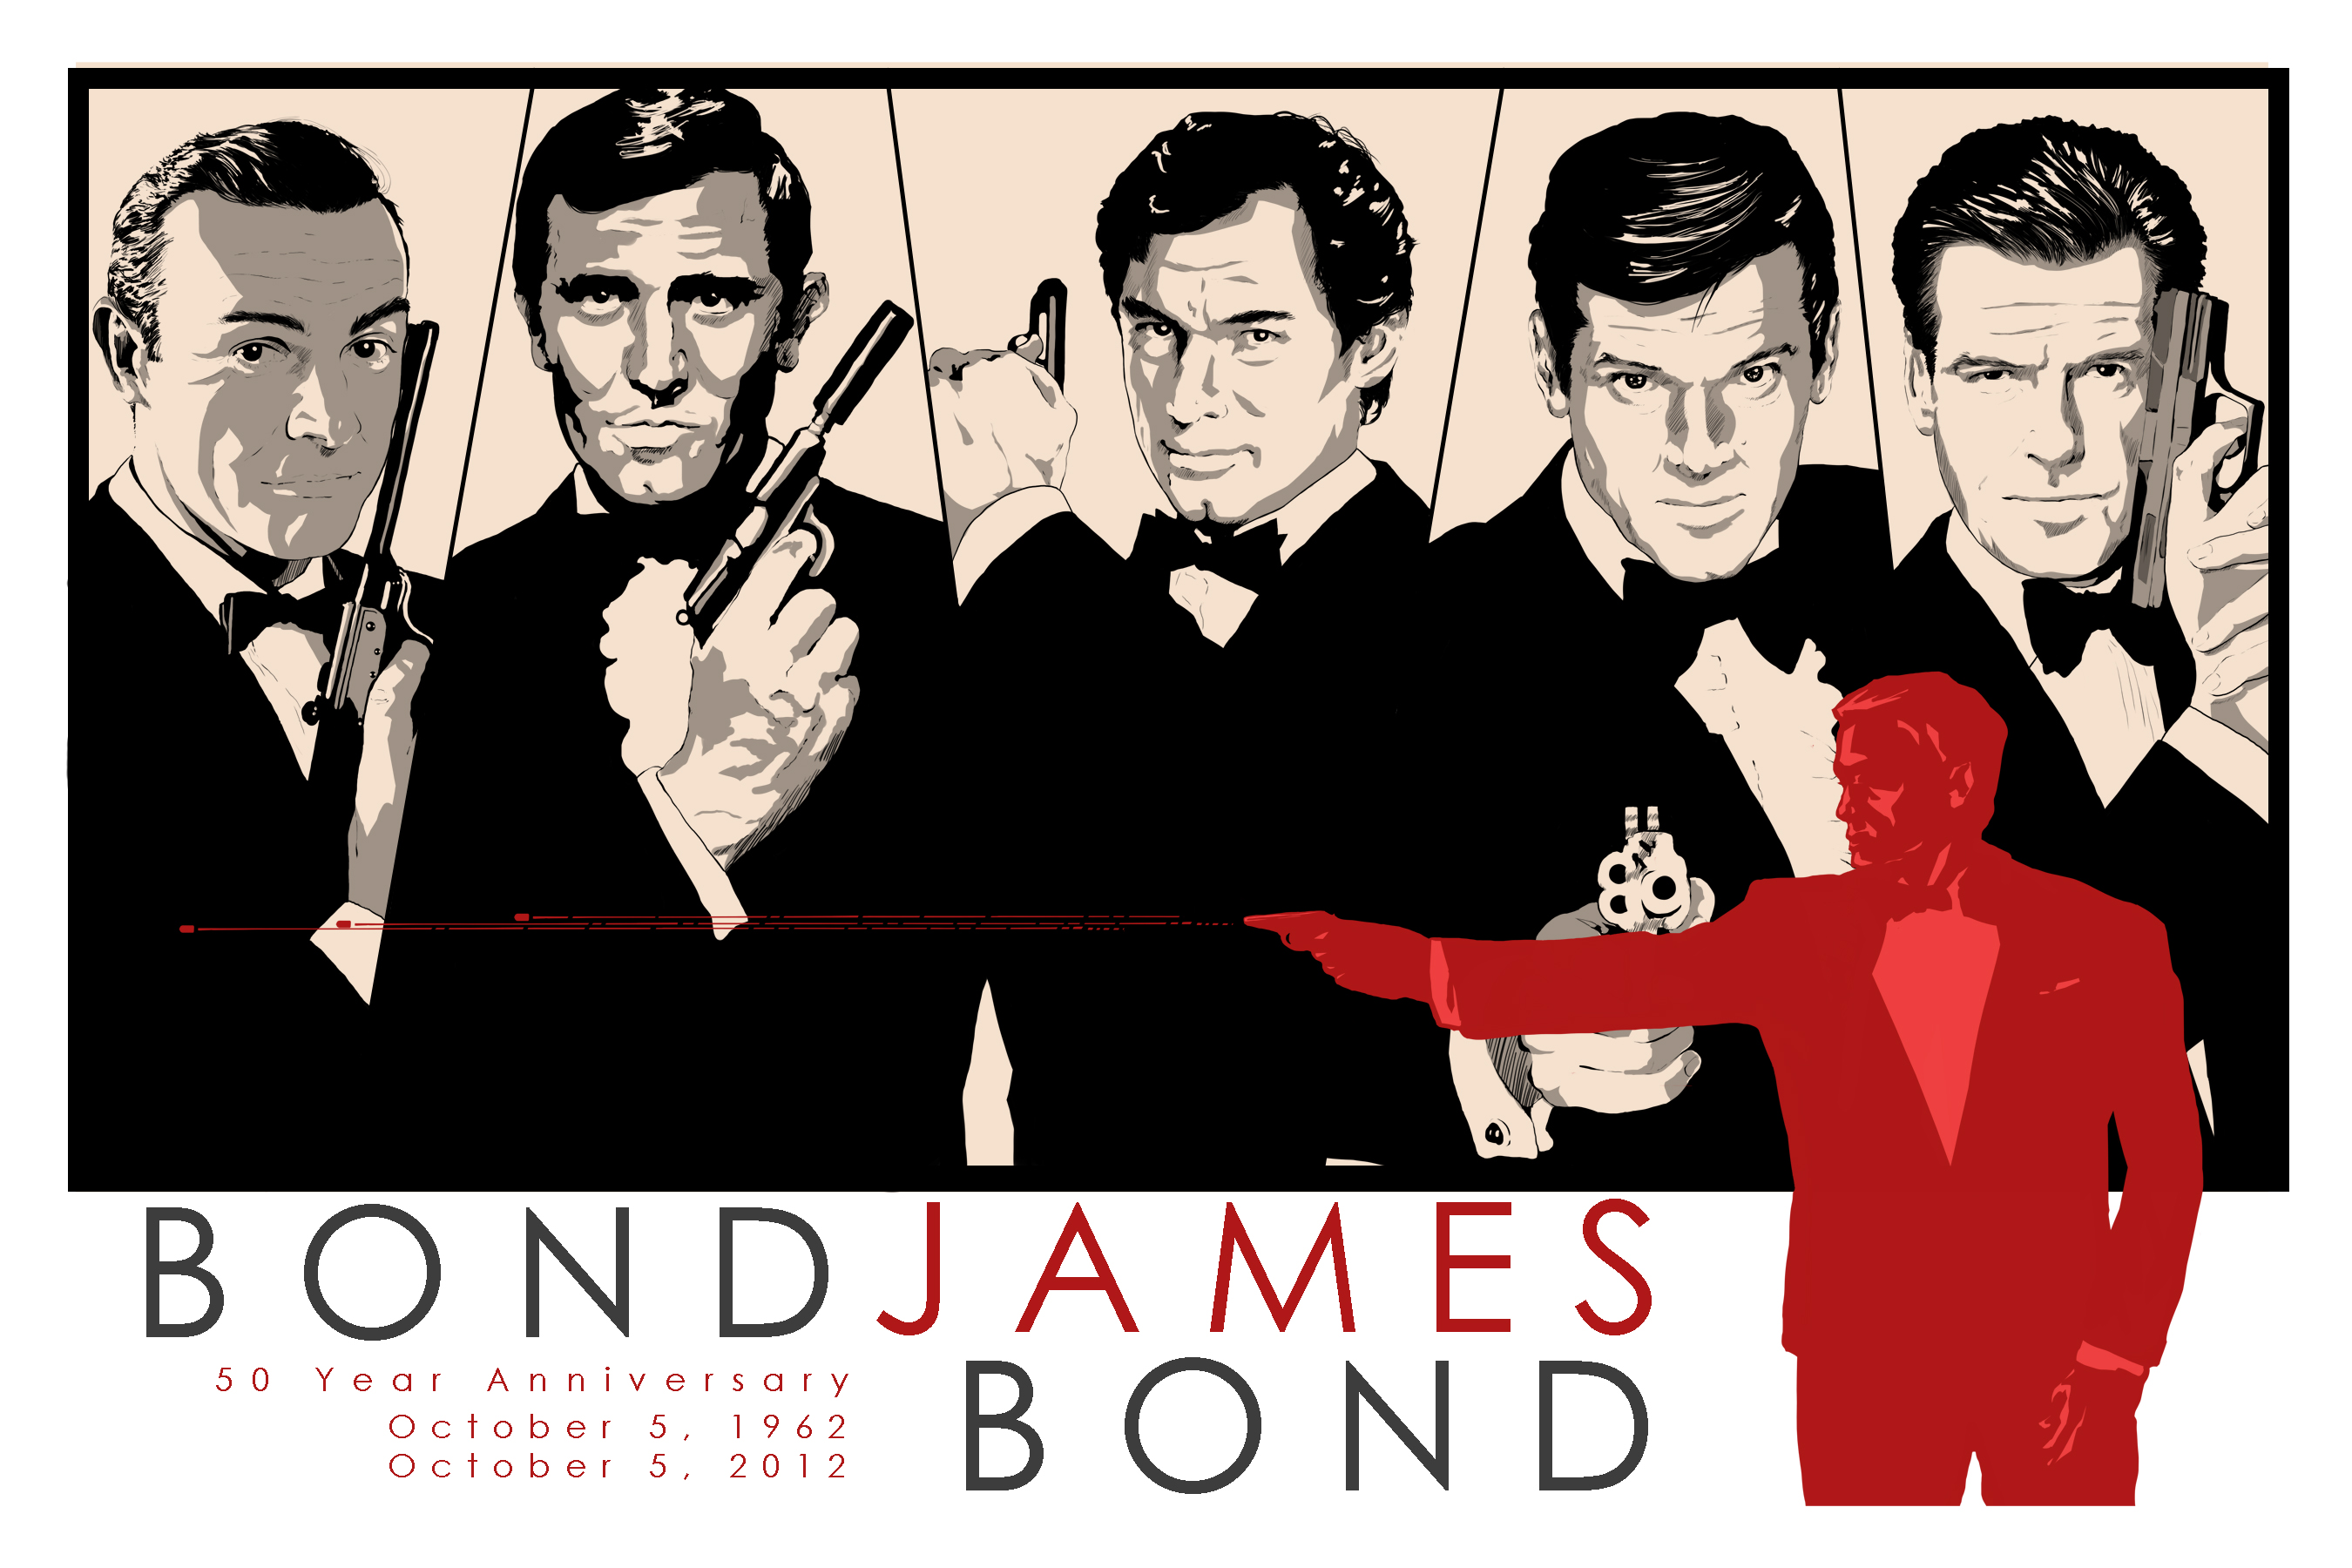 James Bond, 50th Anniversary